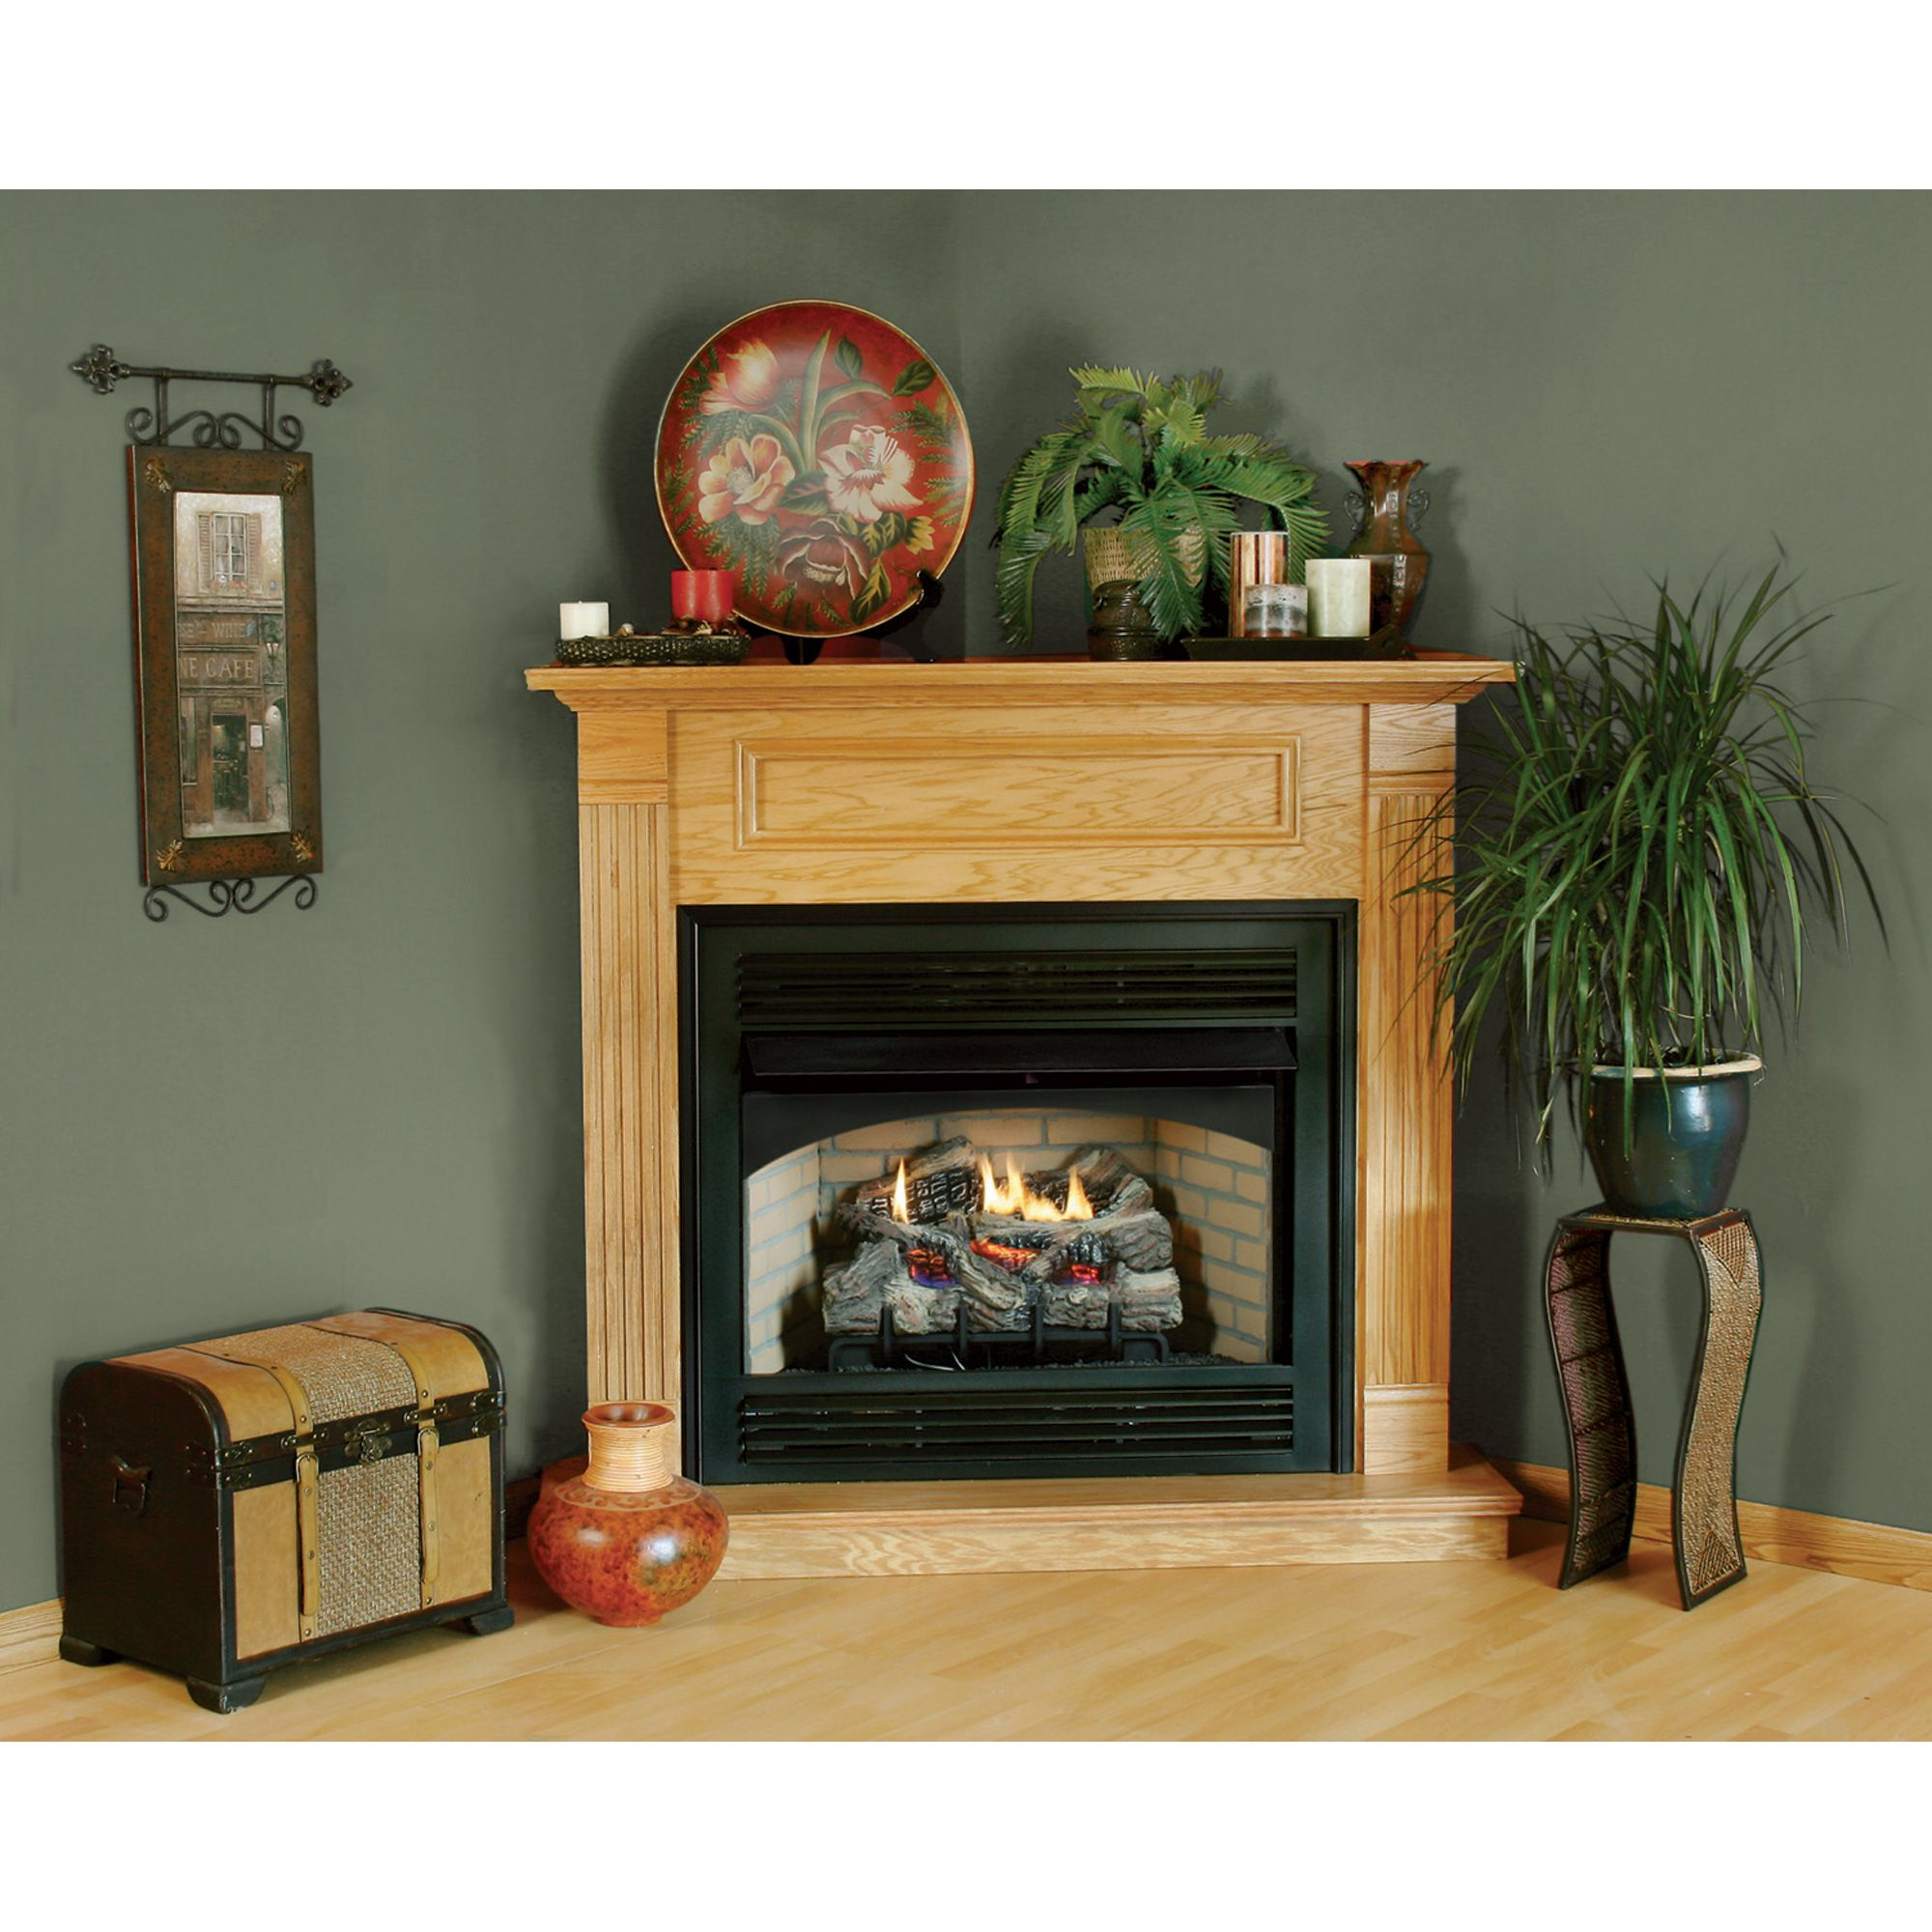 How To Decorate A Fireplace Mantel: How To Decorate A Corner Fireplace Mantel